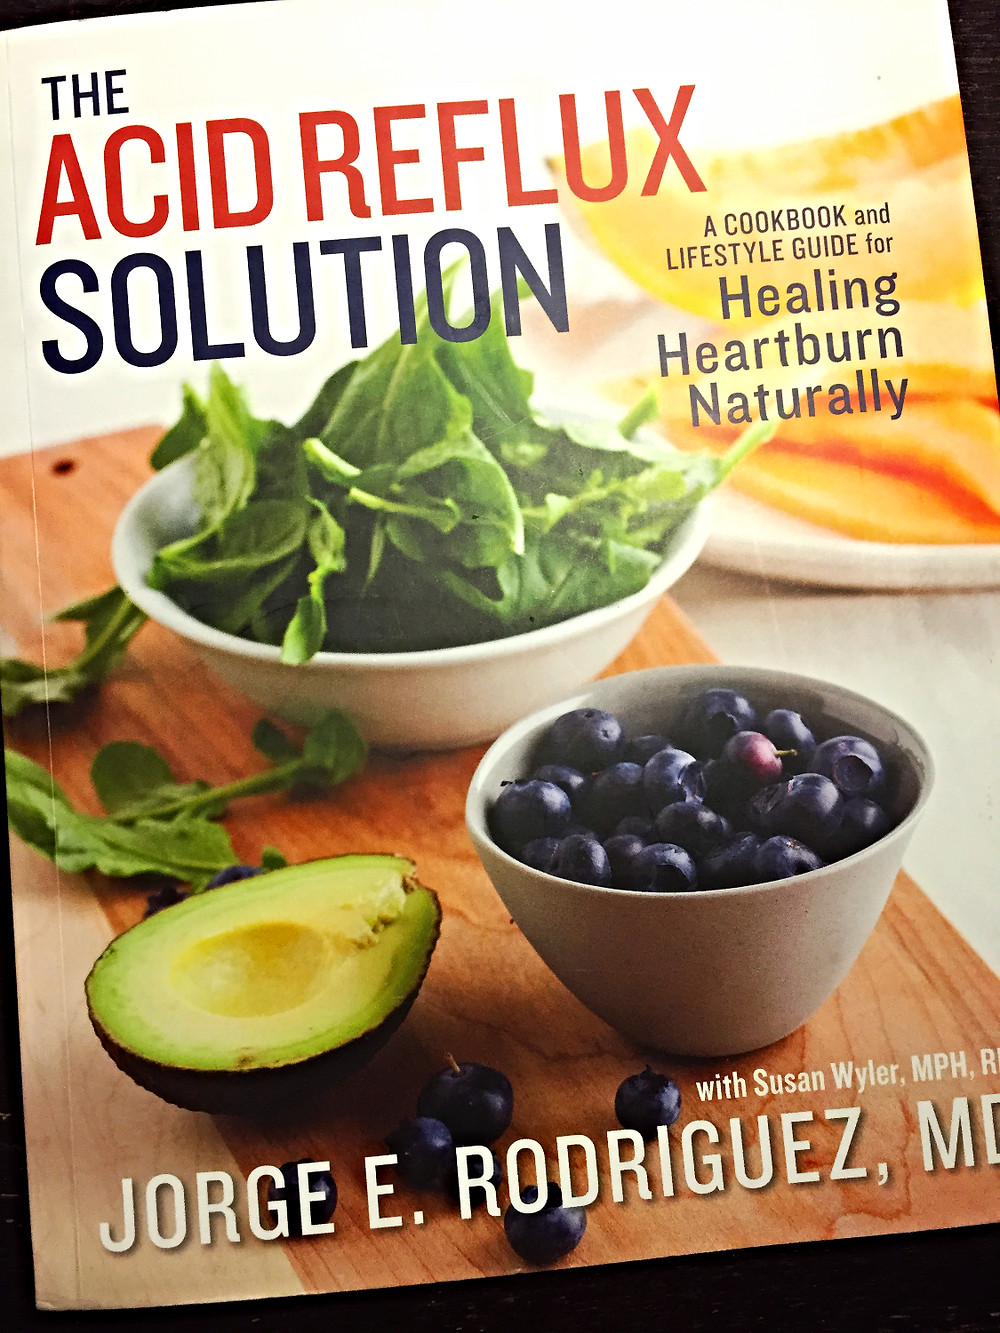 """It's 2016 and I'm saying good bye to acid reflux. I've been scoped and my vocal chords are fine but I just feel so much discomfort and it takes me too long to warm up.I didn't realize how bad things had gotten until my medicine no longer worked. I was taking 2 omeprazole pills a day and still was having severe heartburn symptoms.I was tired of being uncomfortableso I decided to see what could be done. After some online research I realized first that I am not alone and many people suffer from constant heartburn andmany of my """"healthy""""diet choices were actually exacerbating my reflux issues. I thought I ate pretty healthily already. I was wrong.So,I went down to eating almost nothing to figure out what my specific triggers were. I got an acid refluxcookbook and made serious lifestyle changes- the biggest being not eating before bed (which i've loved) and drastically reducing the amount of food I eat/drink at one time. I don;t eat as much meat as I used to either. People say eating this way actually gives you more energy. I have yet to see those results, but I can tell you that I have lost weight and my constant heartburn has gone down to only right after I eat. And I have stopped all my meds!! I'm only a month in so we'll se how things go once I continue. I am hoping to be symptom free by the summer."""